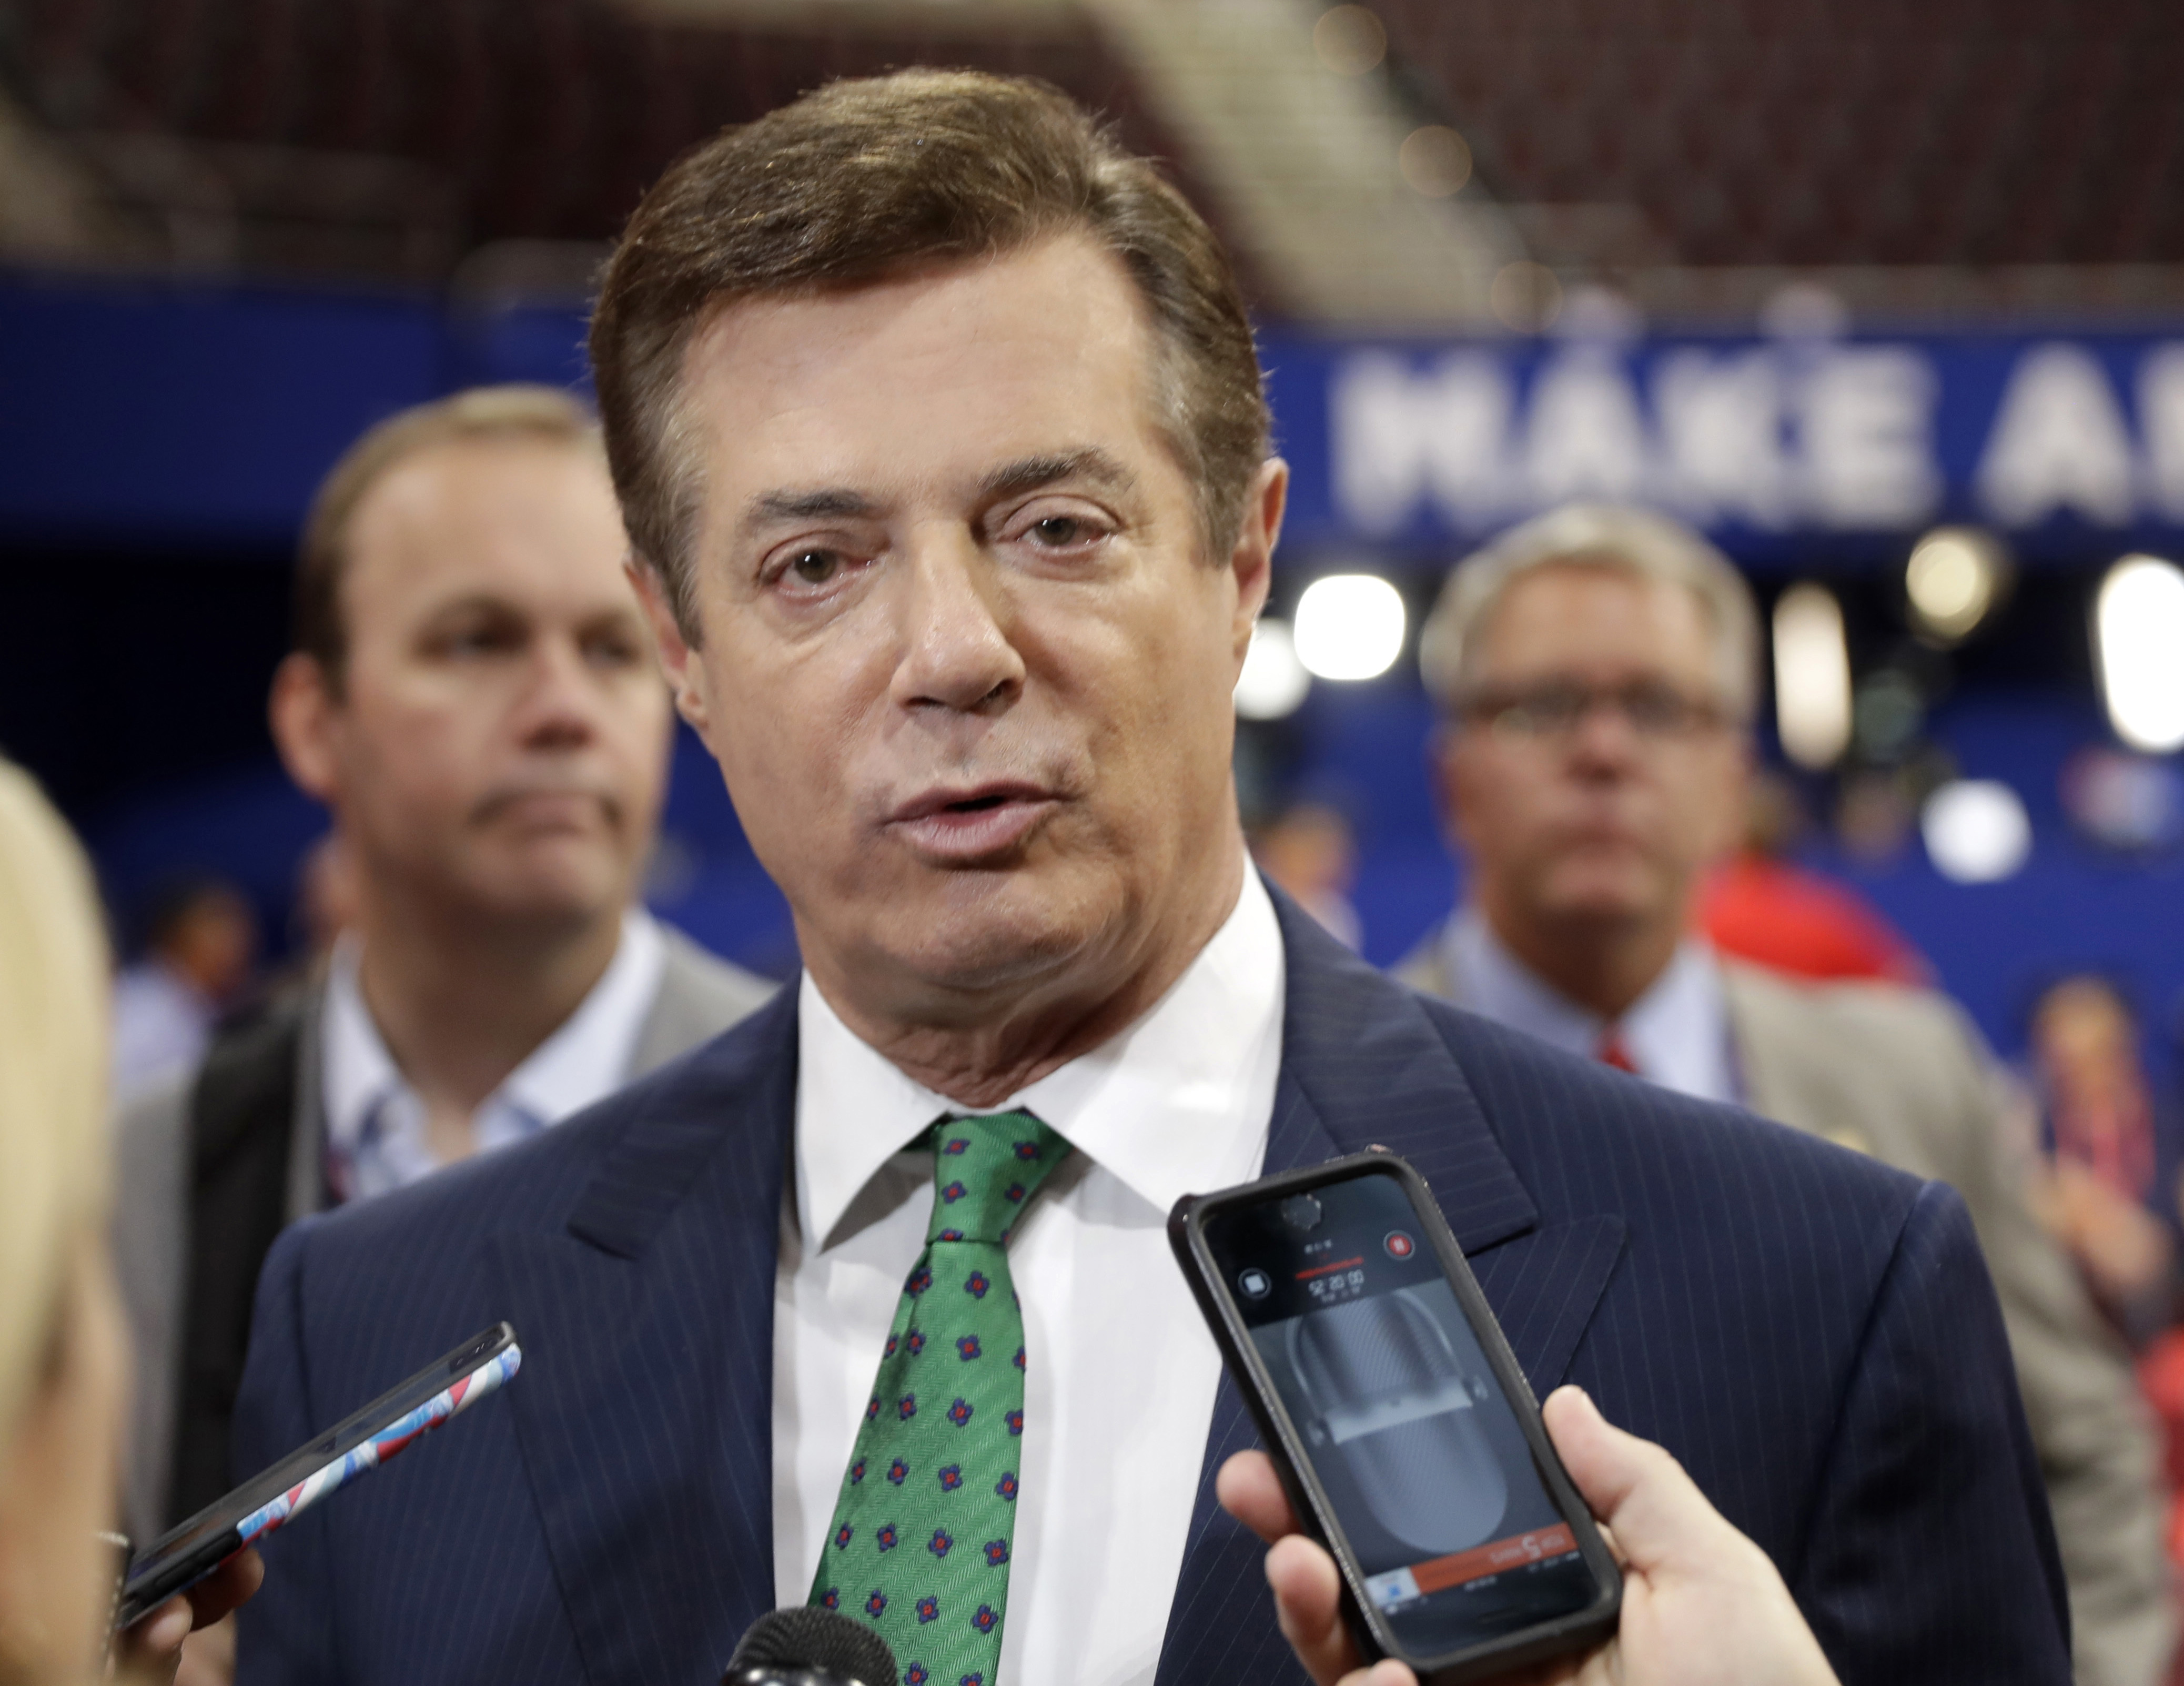 Paul Manafort talks to reporters on the floor of the Republican National Convention at Quicken Loans Arena in Cleveland on  July 17, 2016. (AP Photo/Matt Rourke)